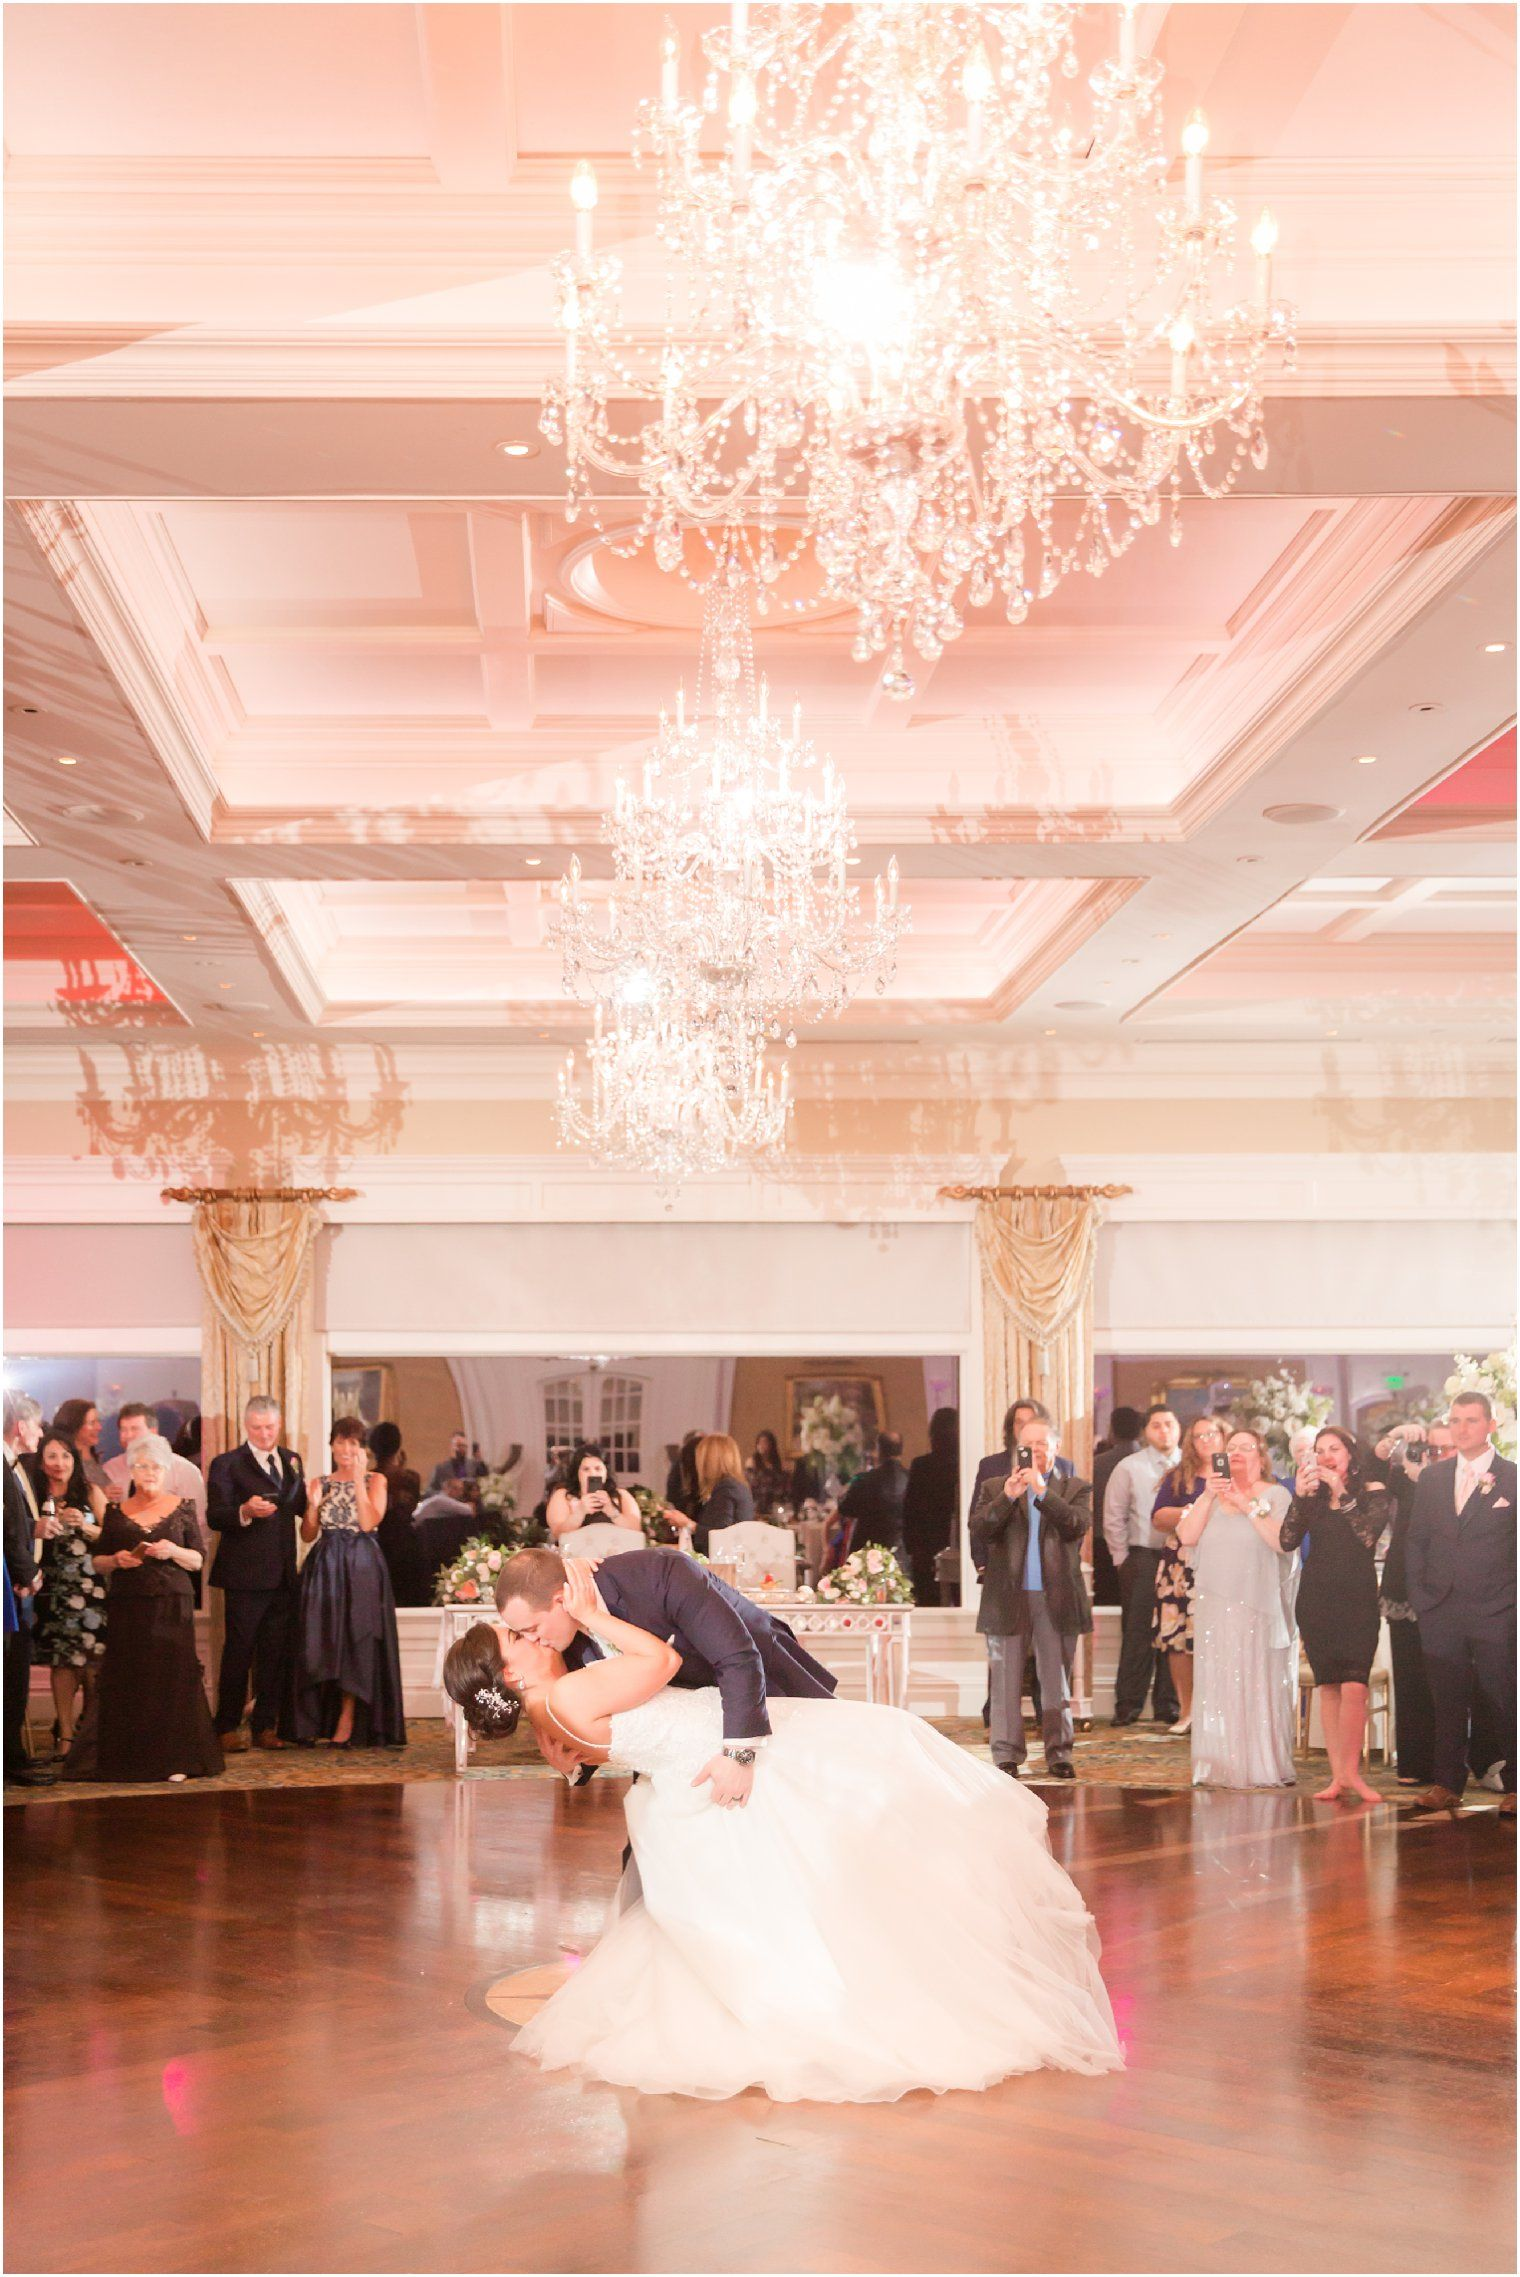 View This Wedding Reception At Clarks Landing Yacht Club In Point Pleasant Nj Photos By Photographers Idalia Photography